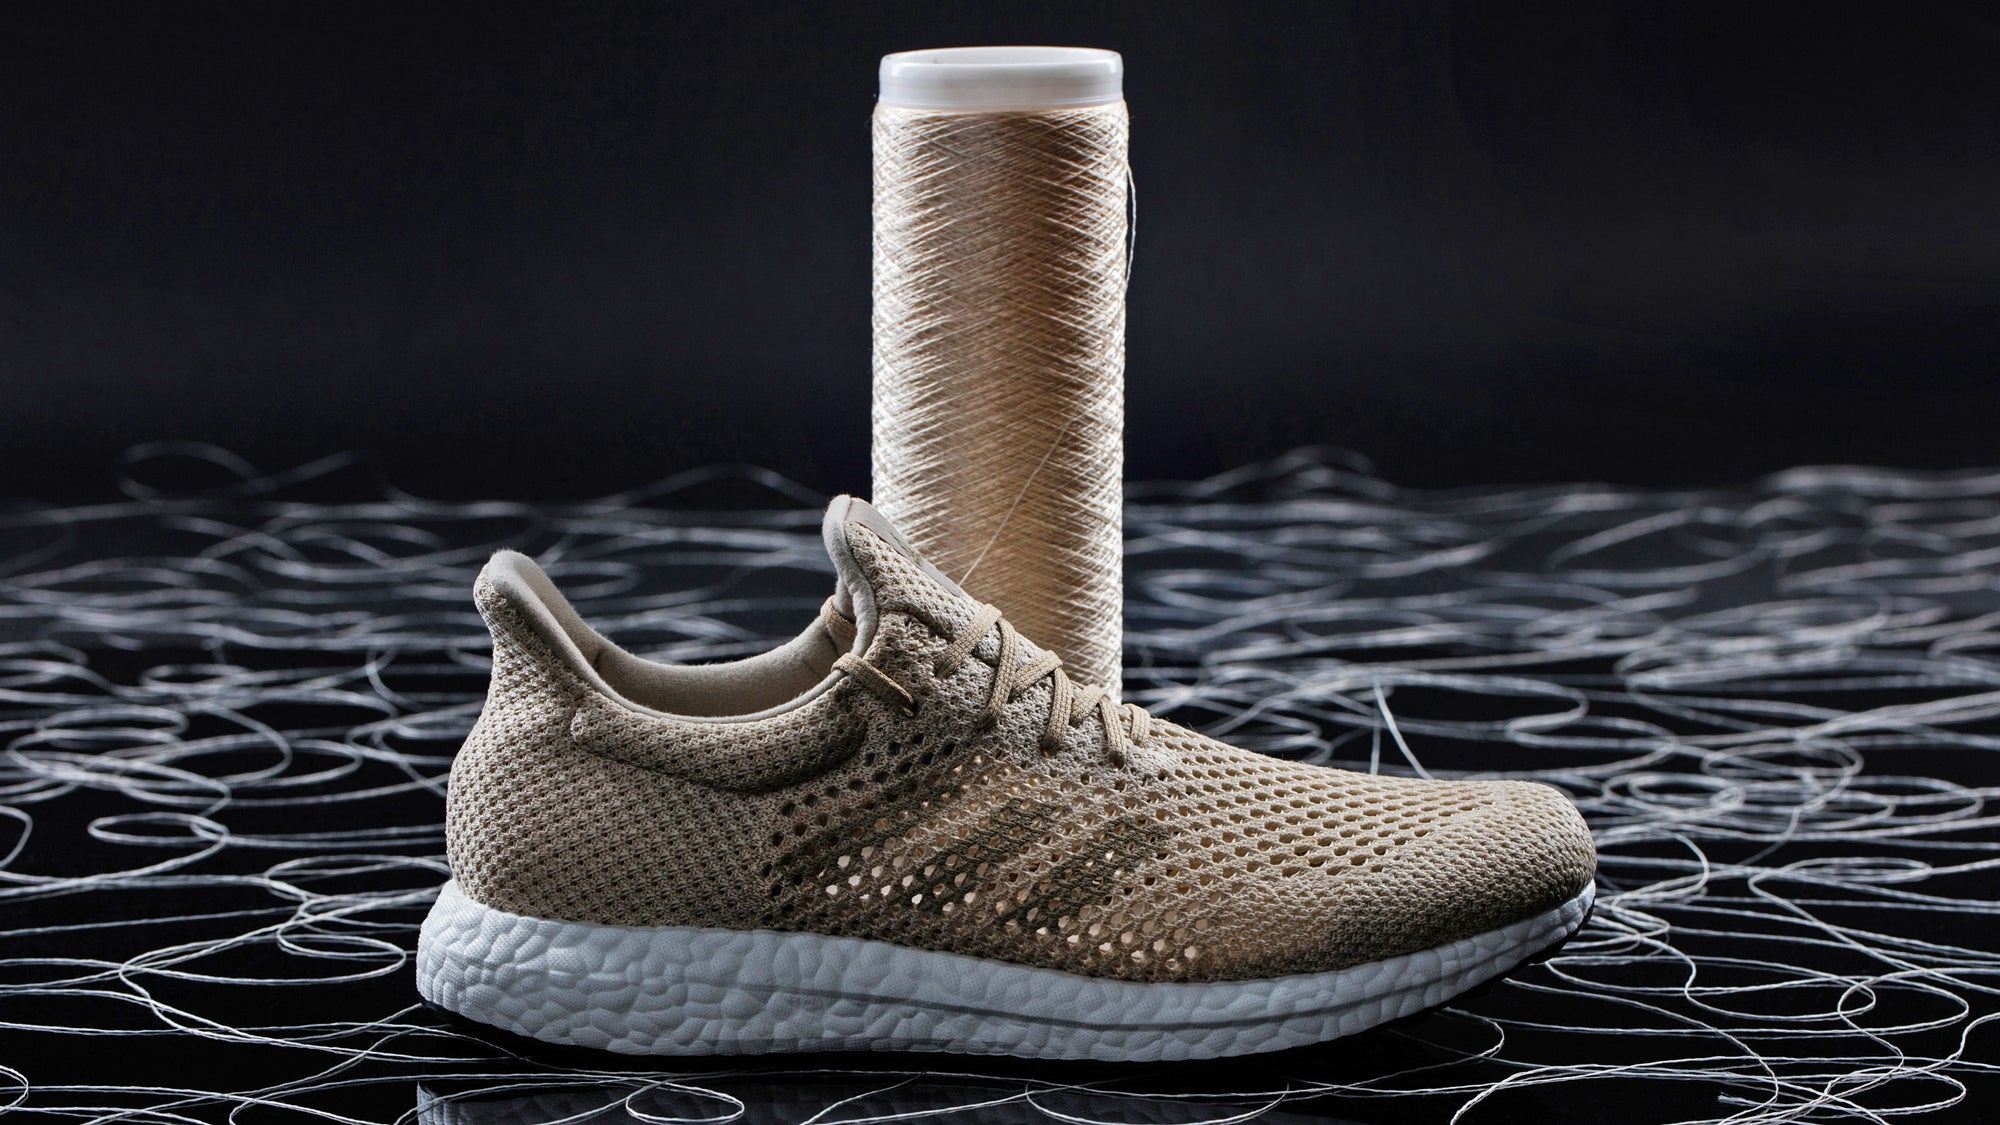 Adidas' New Biodegradable Sneakers Are Made From Ultra-Strong Artificial Silk Fibres